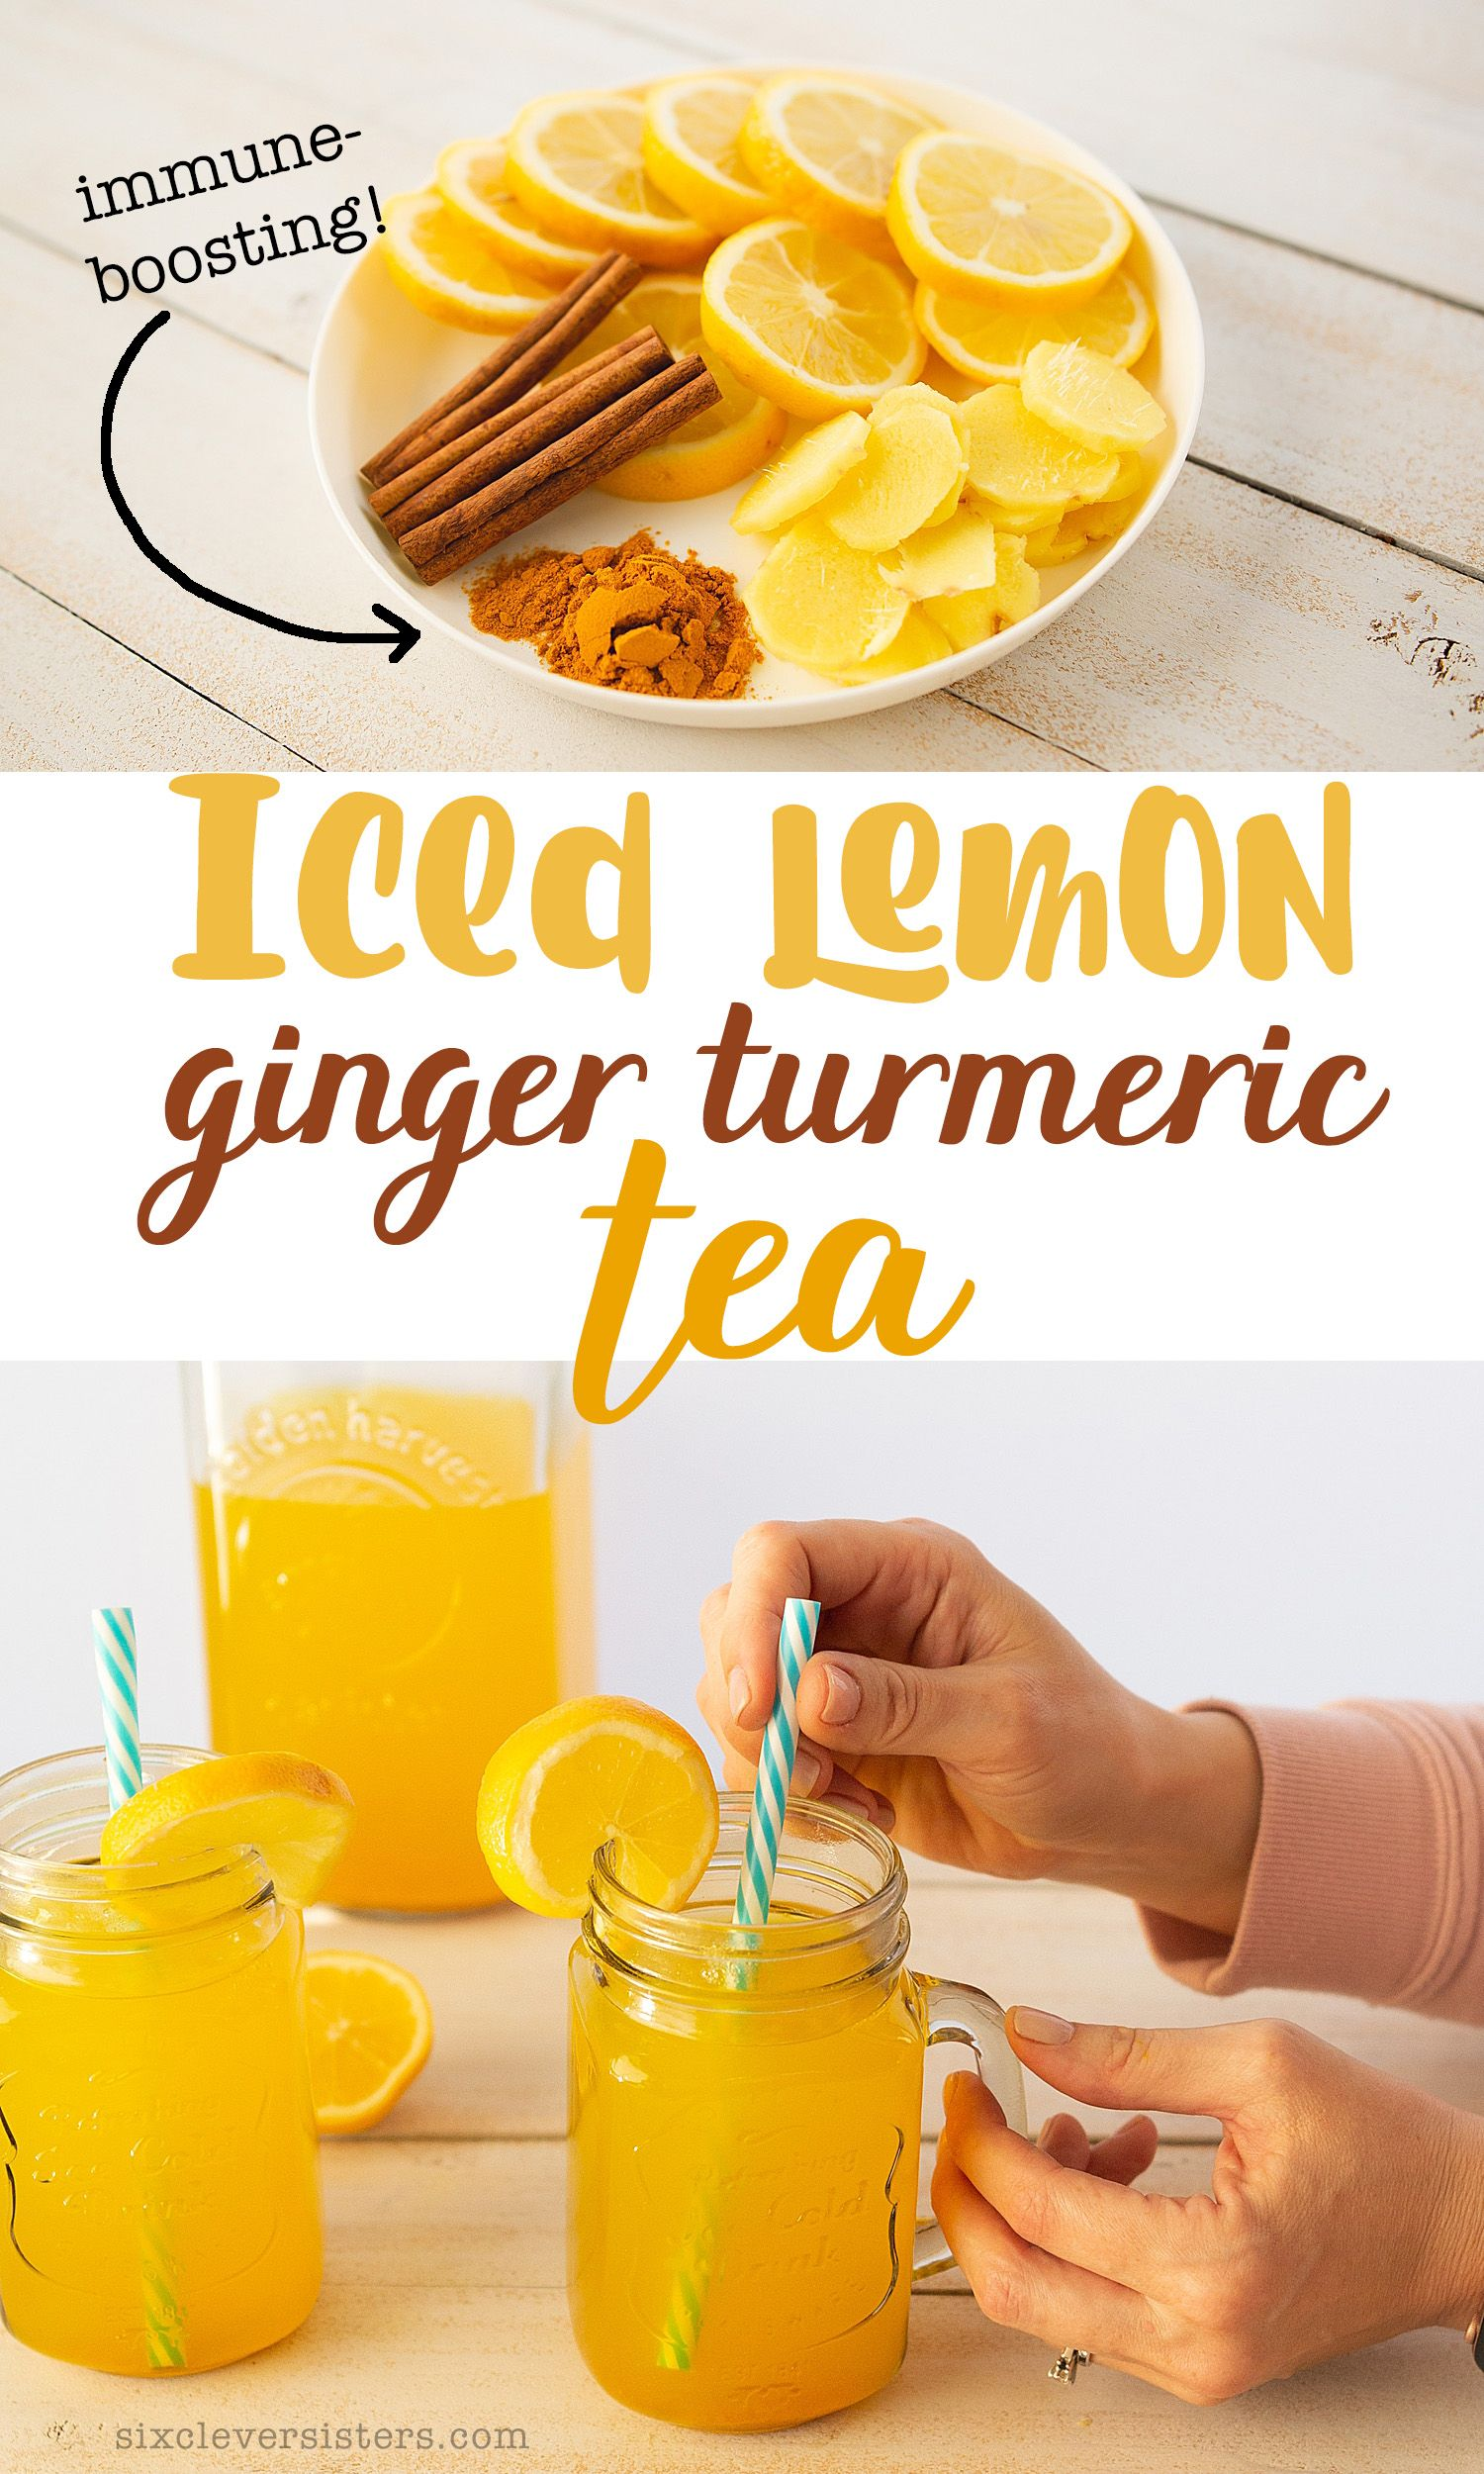 Give your immune system a boost during this flu season with this iced lemon ginger turmeric tea! It's a cold, turmeric tea recipe that is an immune boosting tea made to help your immune system be strong! #tea #tumeric #healthy #drink #recipe #recipeoftheday #lemon #healthyrecipe #immune